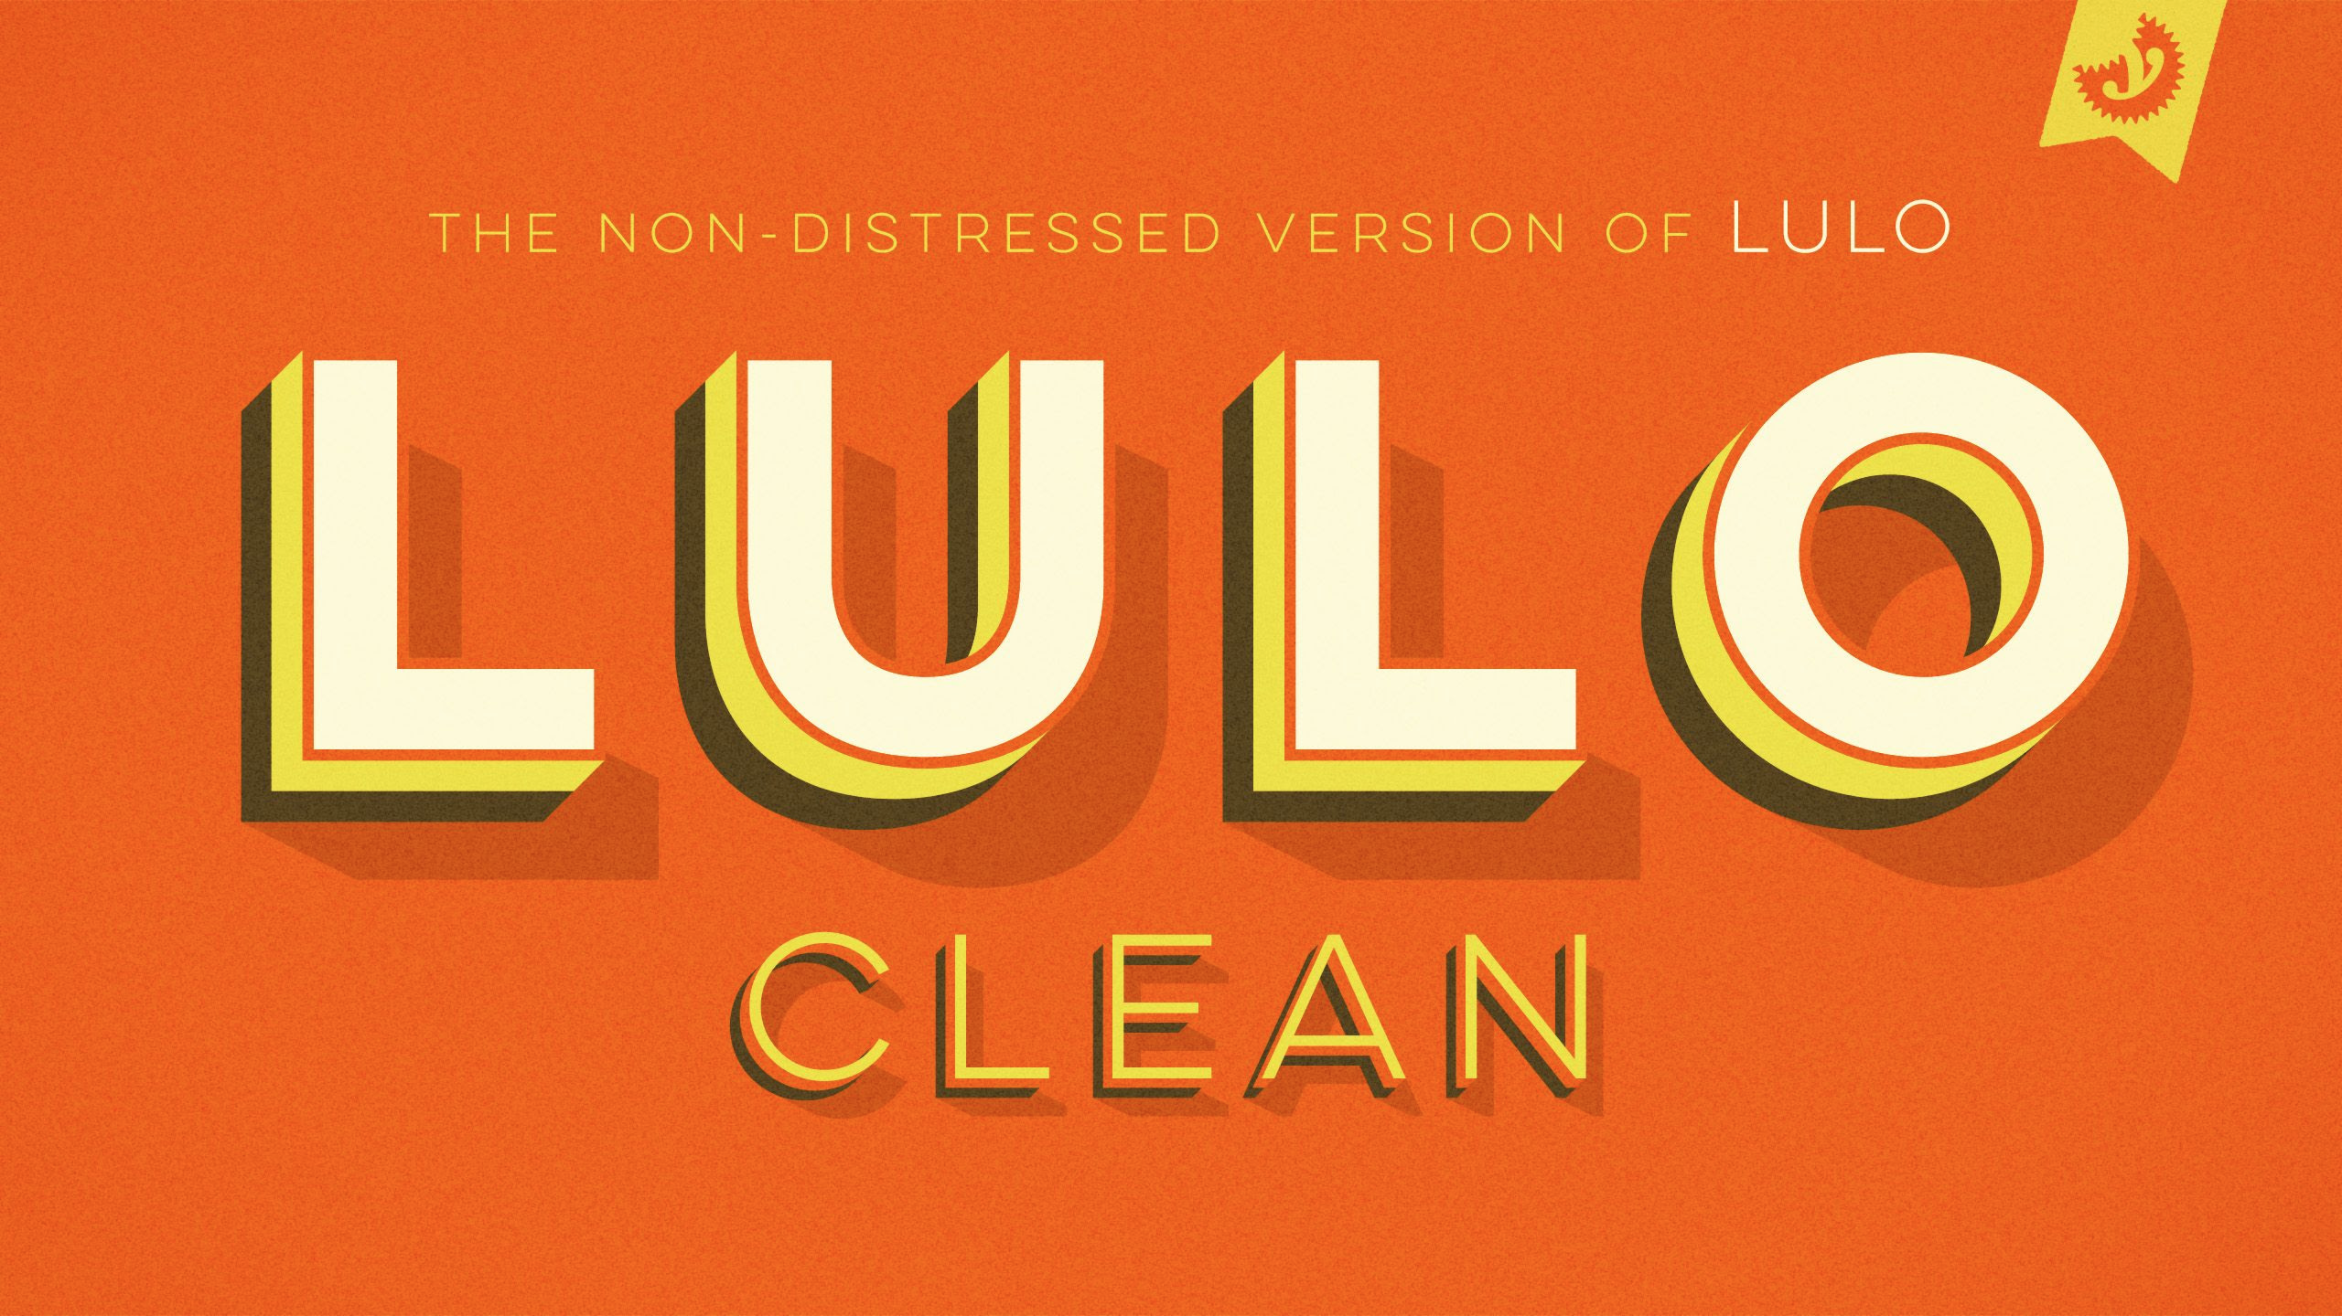 Lulo Clean family, a layered type system from our friends at  Yellow Design Studio . A more clean-cut version of the original  Lulo design, Lulo Clean is a shoe-in choice for projects where you need your selected typeface to exude personality. Its layered capabilities are bold, engaging, and fun.